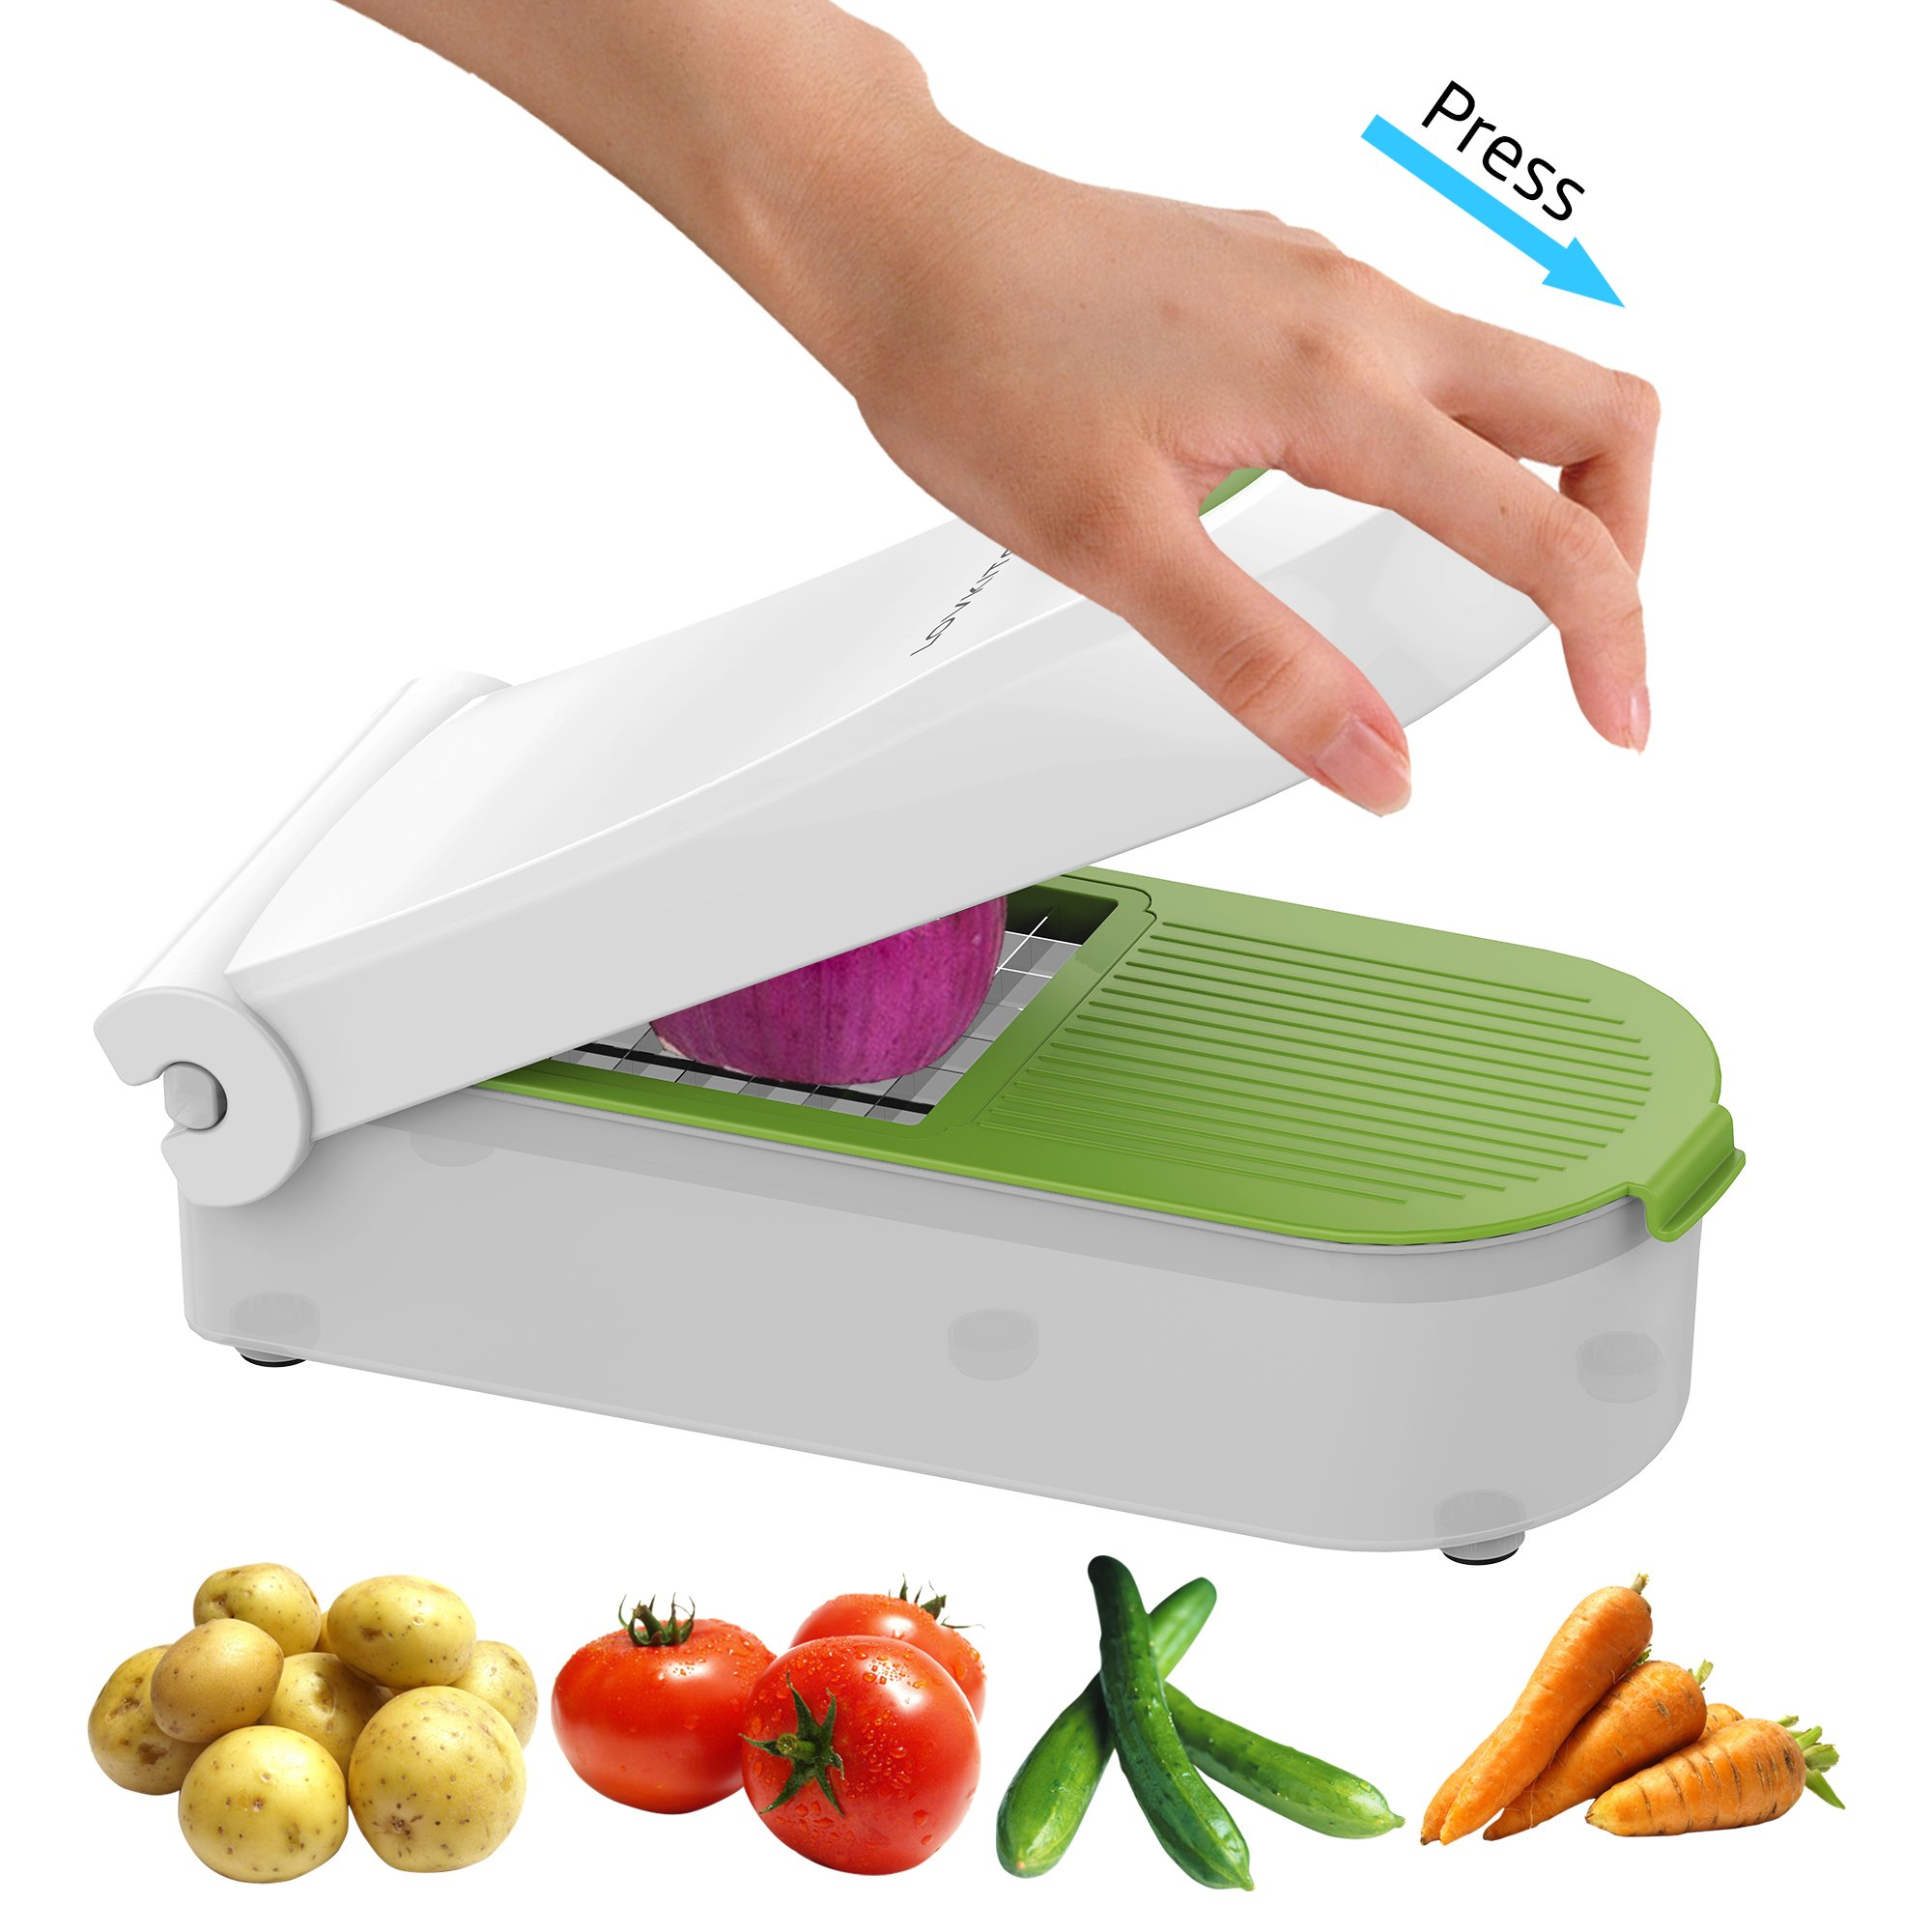 Vegetable Chopper Dicer Slicer Cutter Manual / Vegetable Grater with 5 Stainless Steel Blades - LOVKITCHEN Multi-functional Adjustable Vegetable & Fruit Chopper Dicer with Storage Container